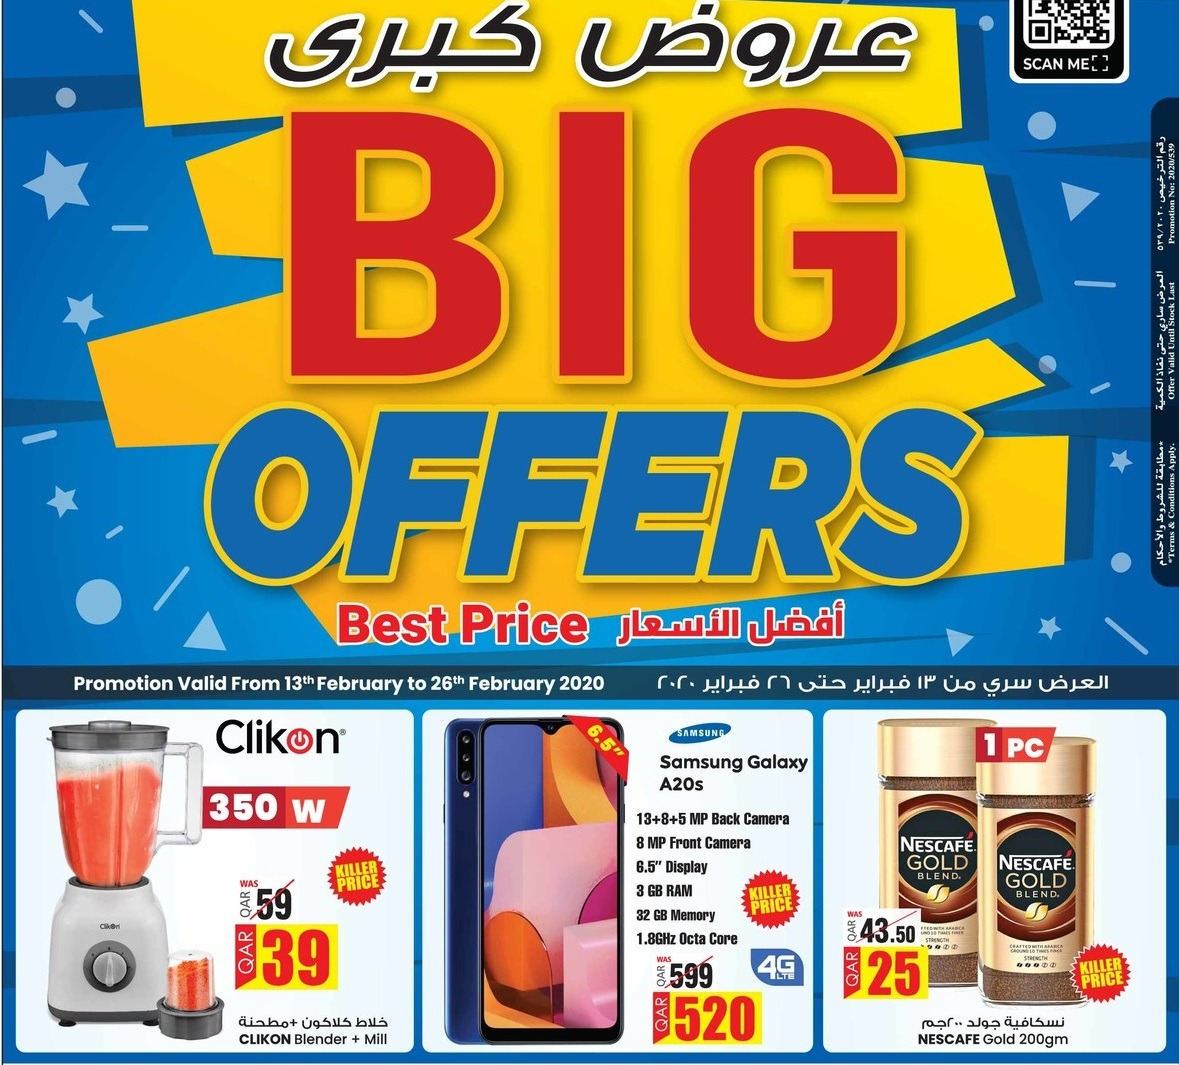 Special Promotion for Ansar Gallery